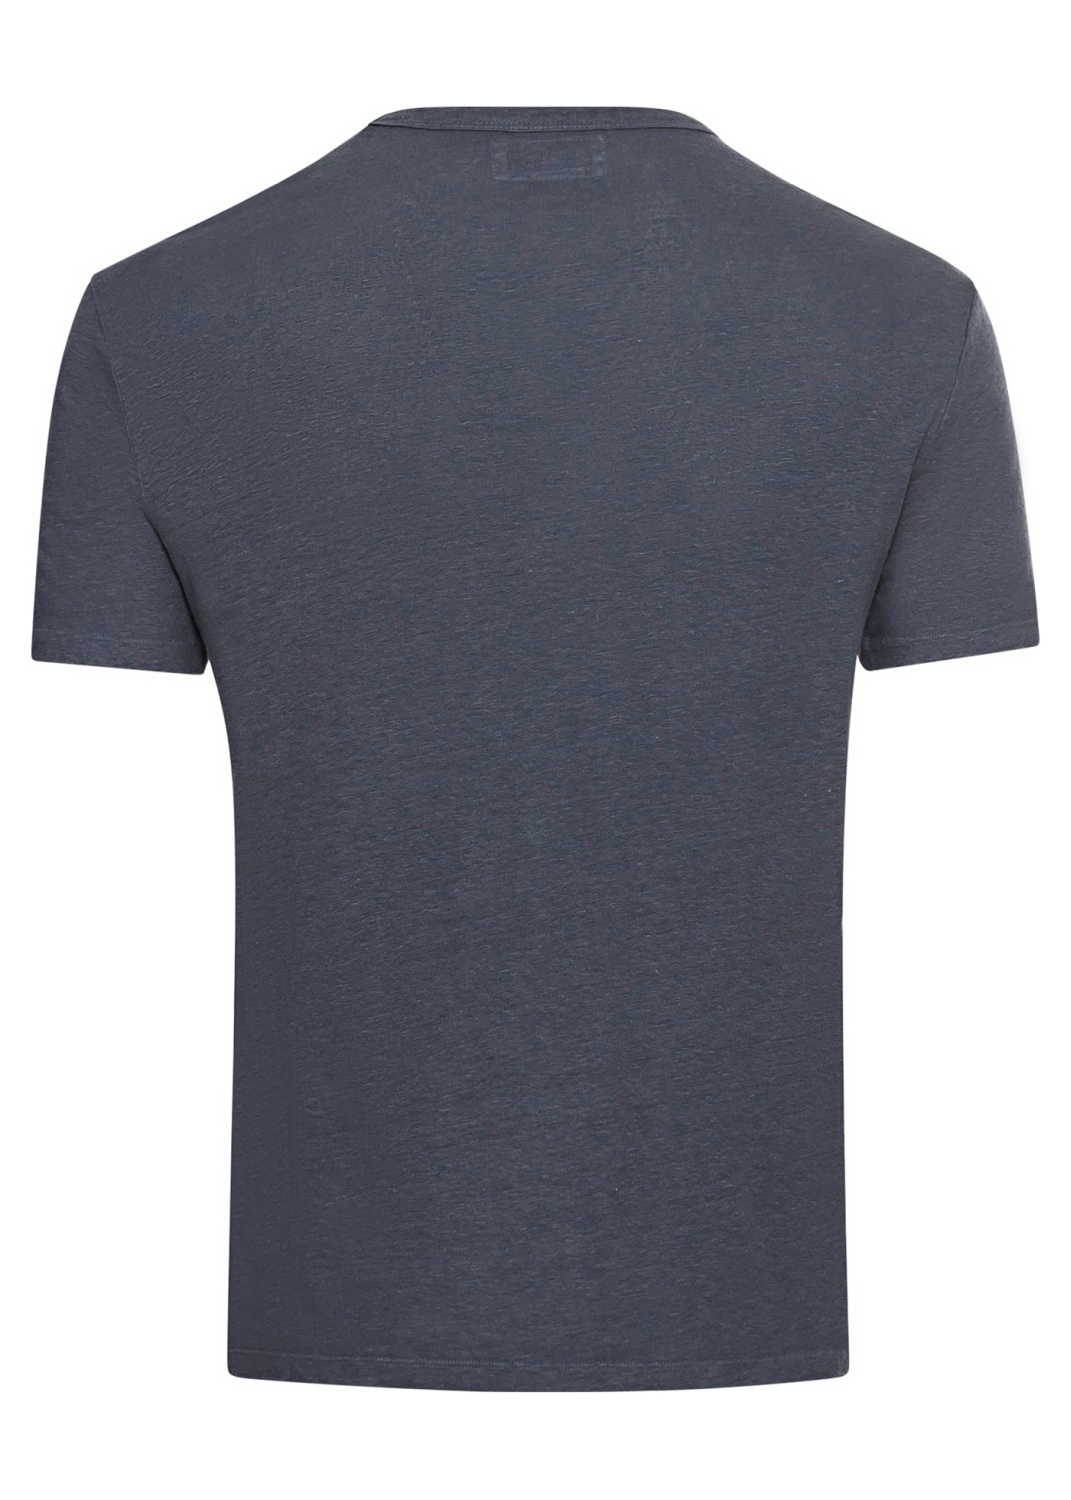 SS TEE PIECE DYED LINEN image number 1